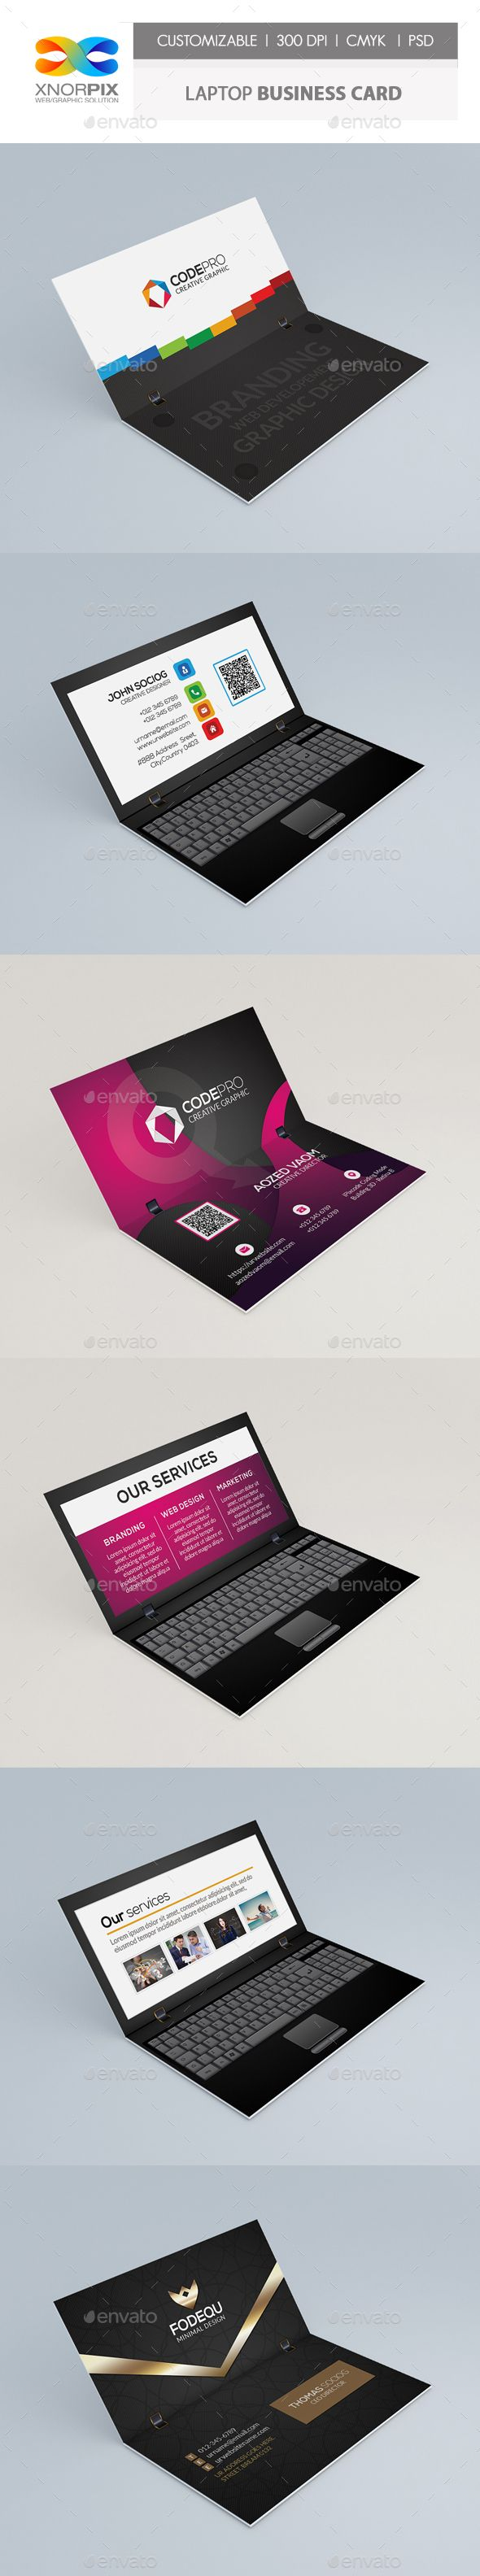 414 best business card template images on pinterest business laptop business card alramifo Images